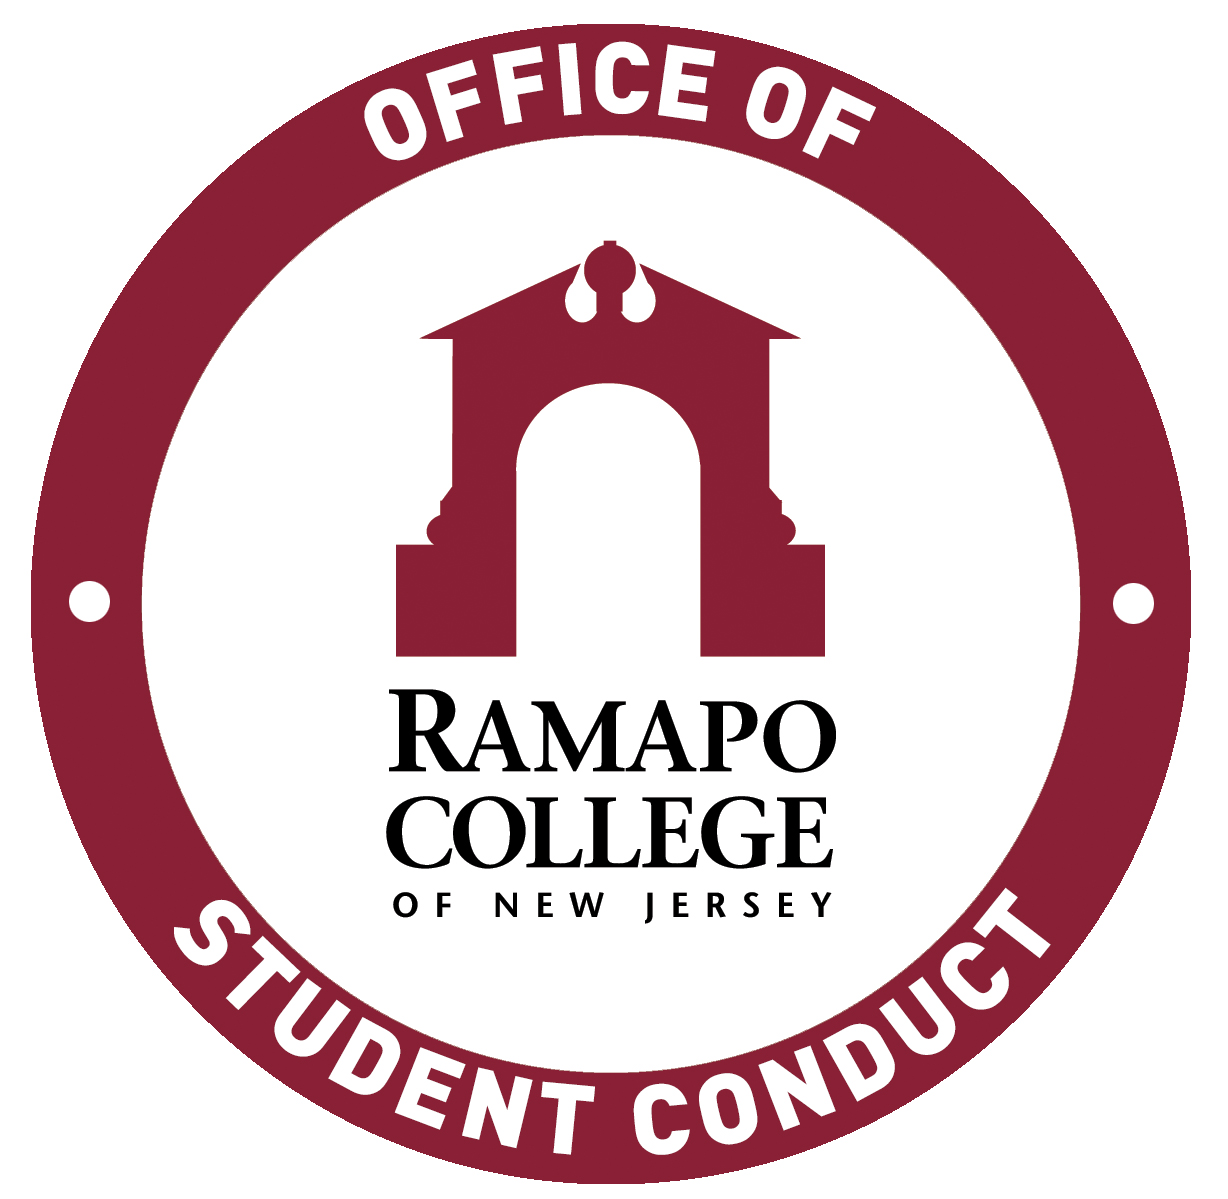 Most Colleges Weigh Student Discipline >> Frequently Asked Questions Office Of Student Conduct Ramapo